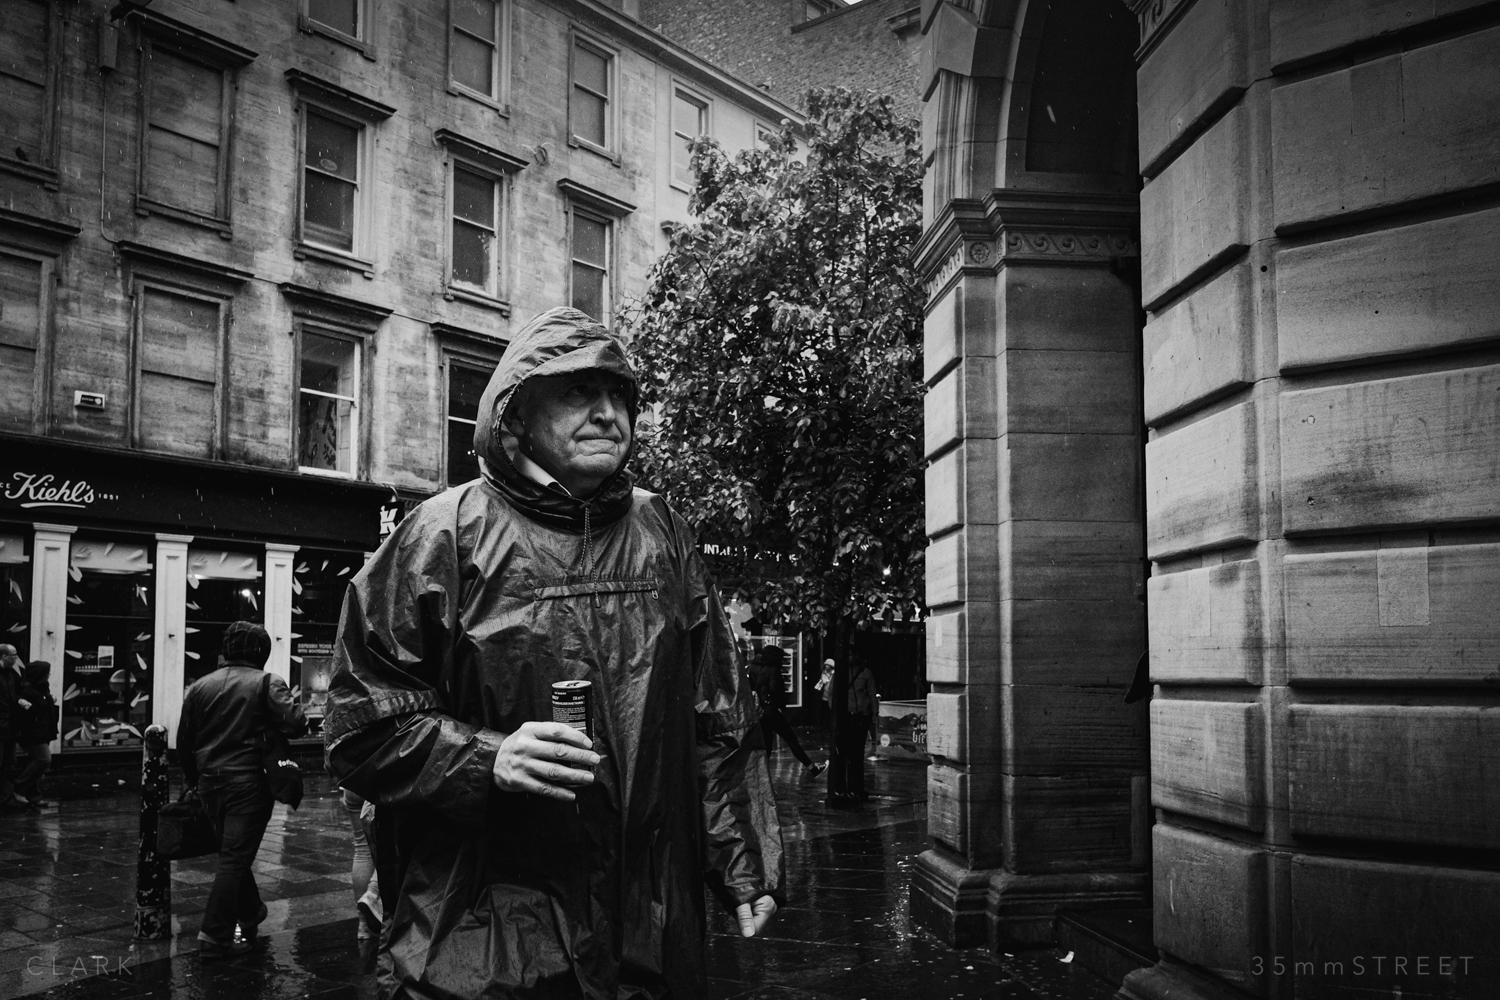 006_35mmStreet-Rainy-Friday-Glasgow.jpg